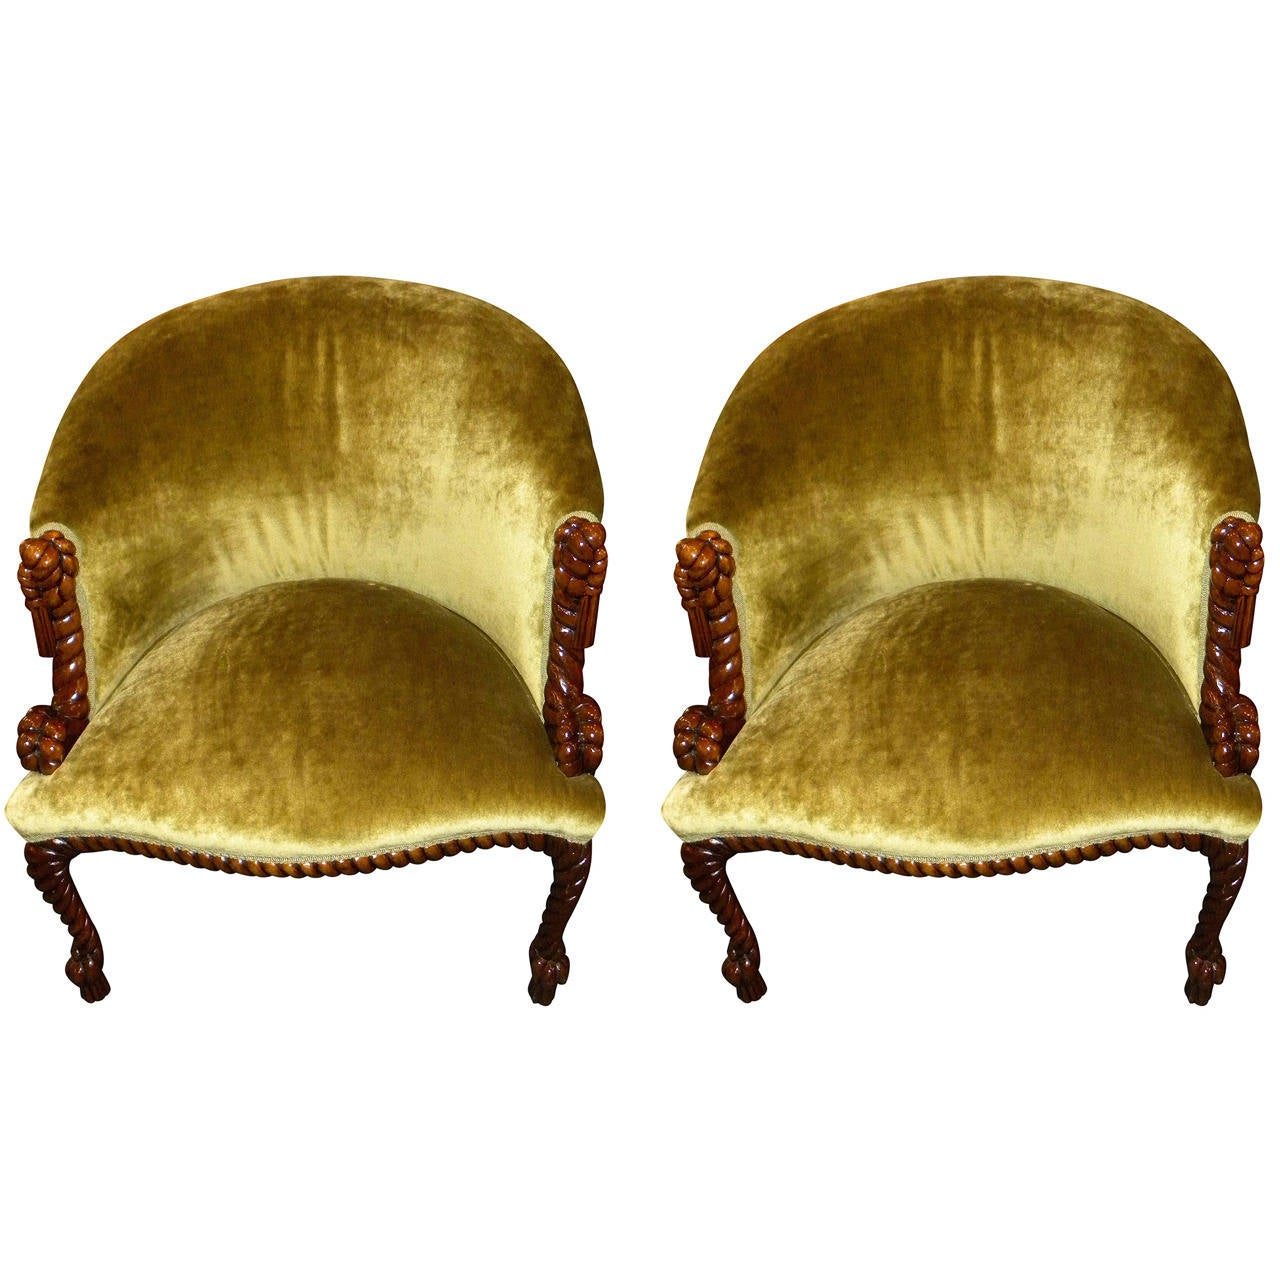 Unusual French Carved Wood Art Deco Armchairs At 1stdibs